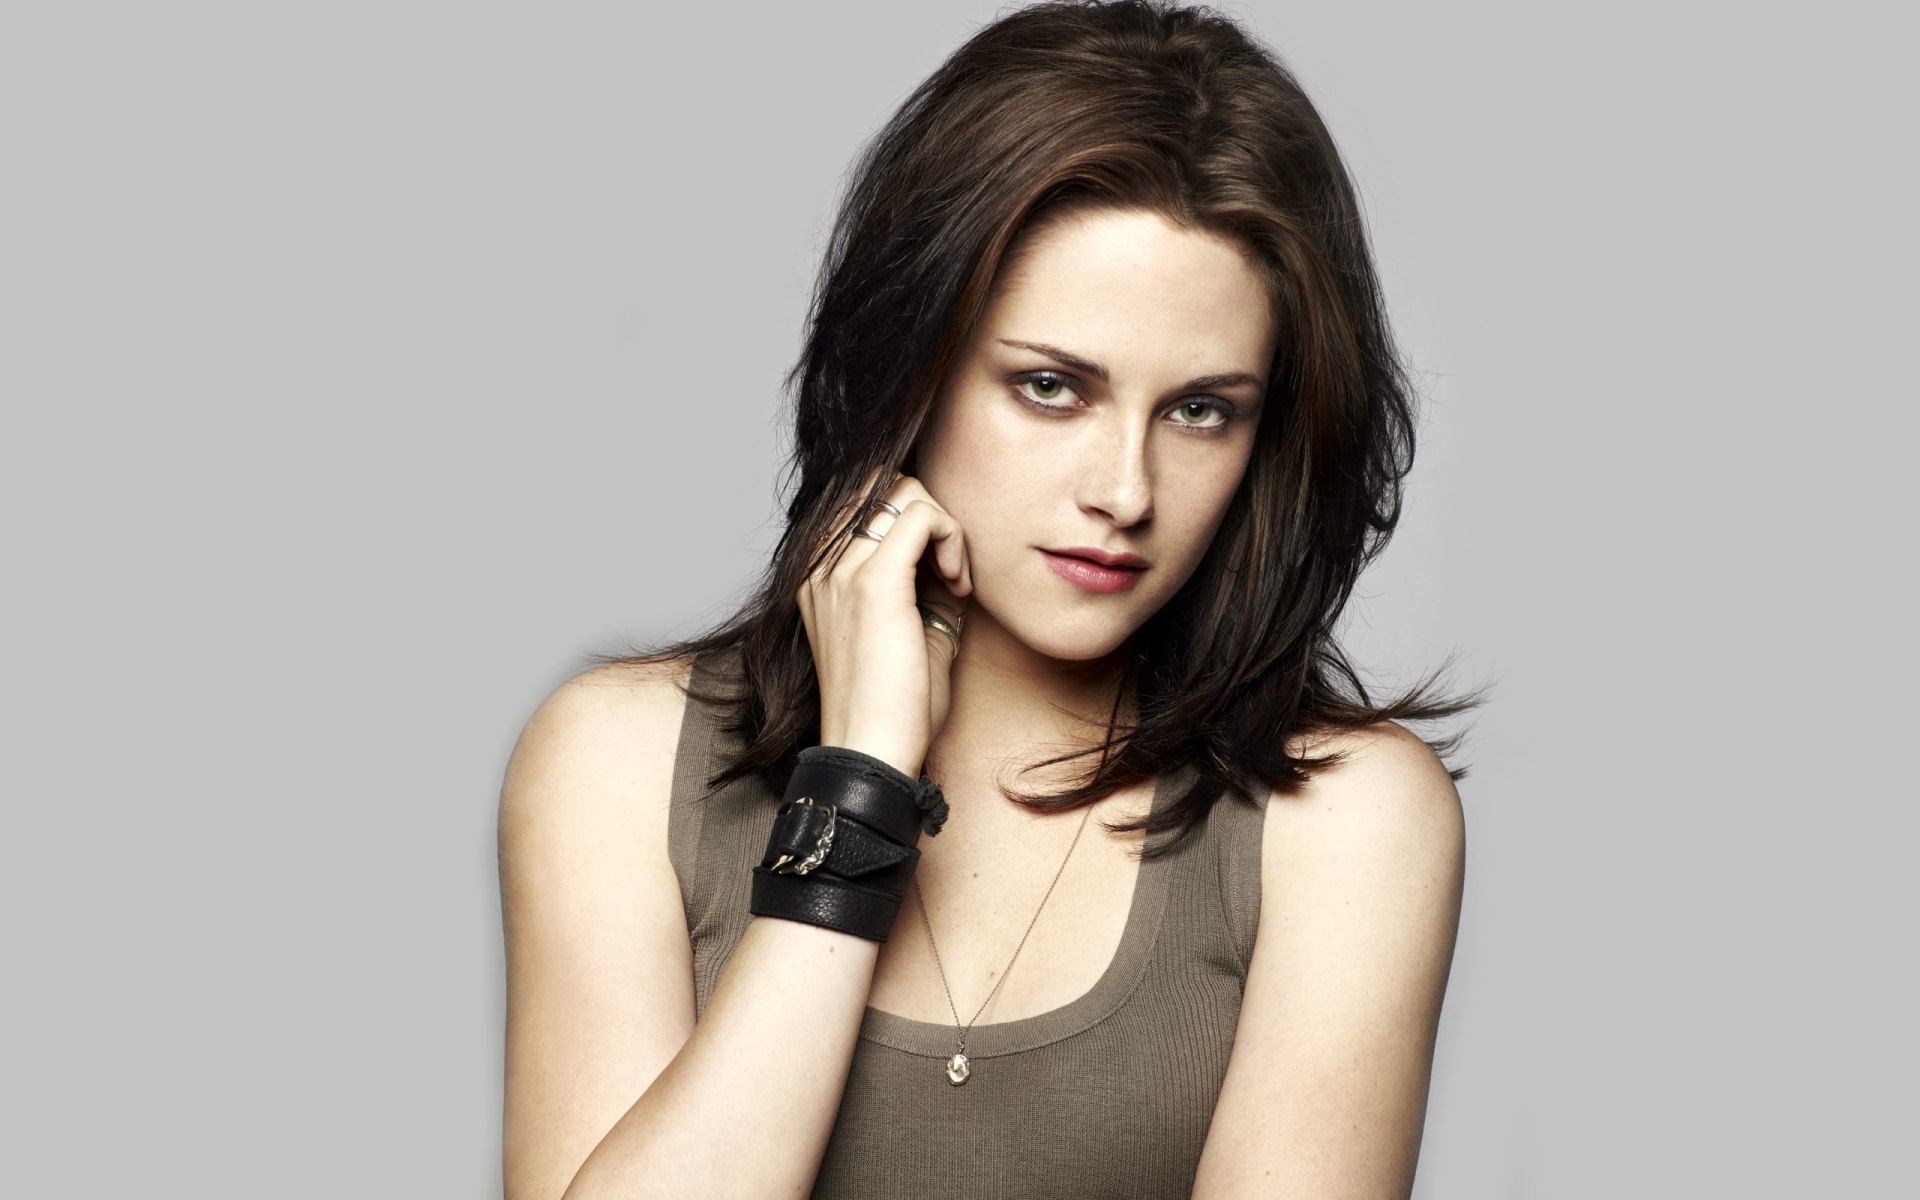 kristen stewart wallpapers hd A9